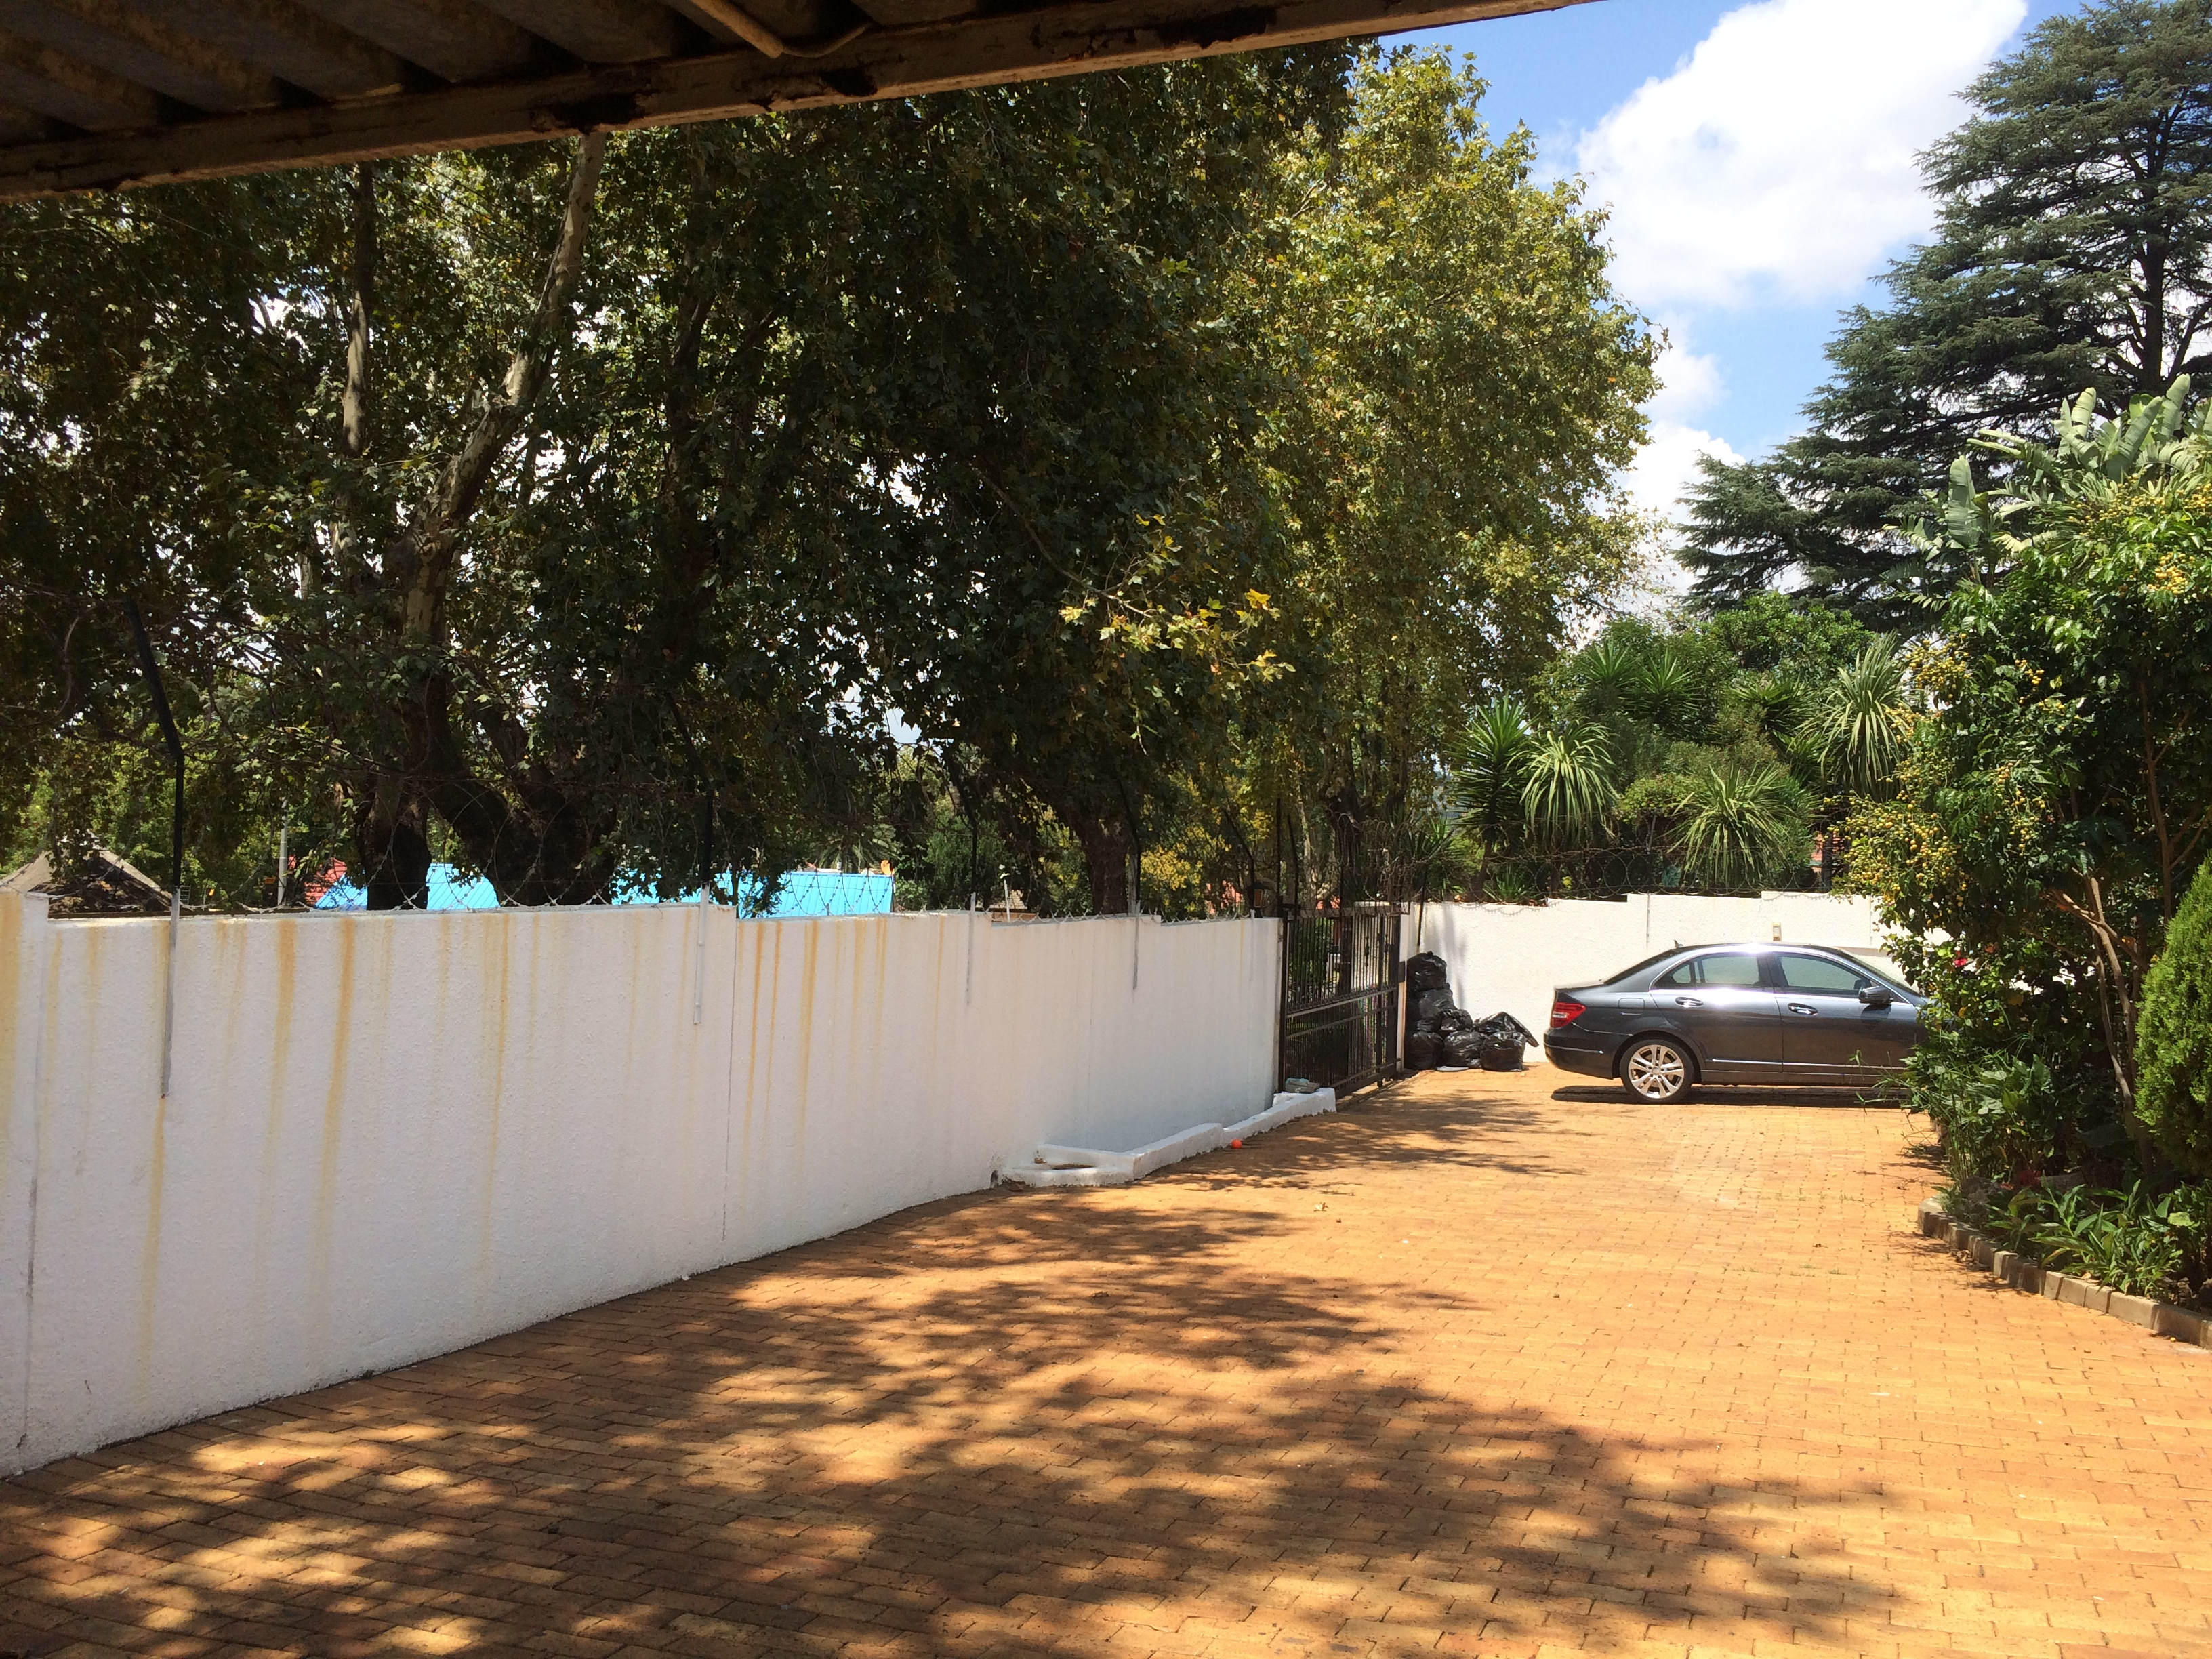 7 derrick, cyrildene, Gauteng, 3 Bedrooms Bedrooms, ,2 BathroomsBathrooms,House,For sale,derrick,1044